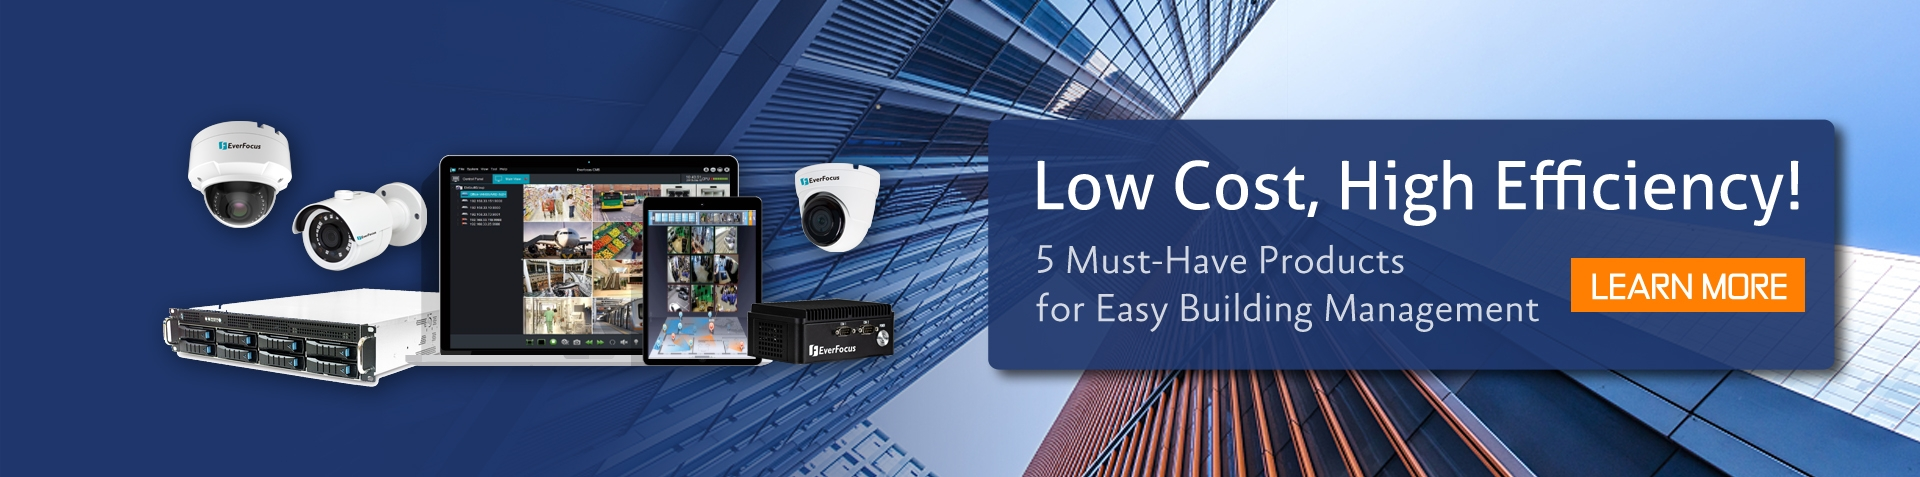 Low Cost, High Efficiency! 5 Must-Have Products for Easy Building Management​